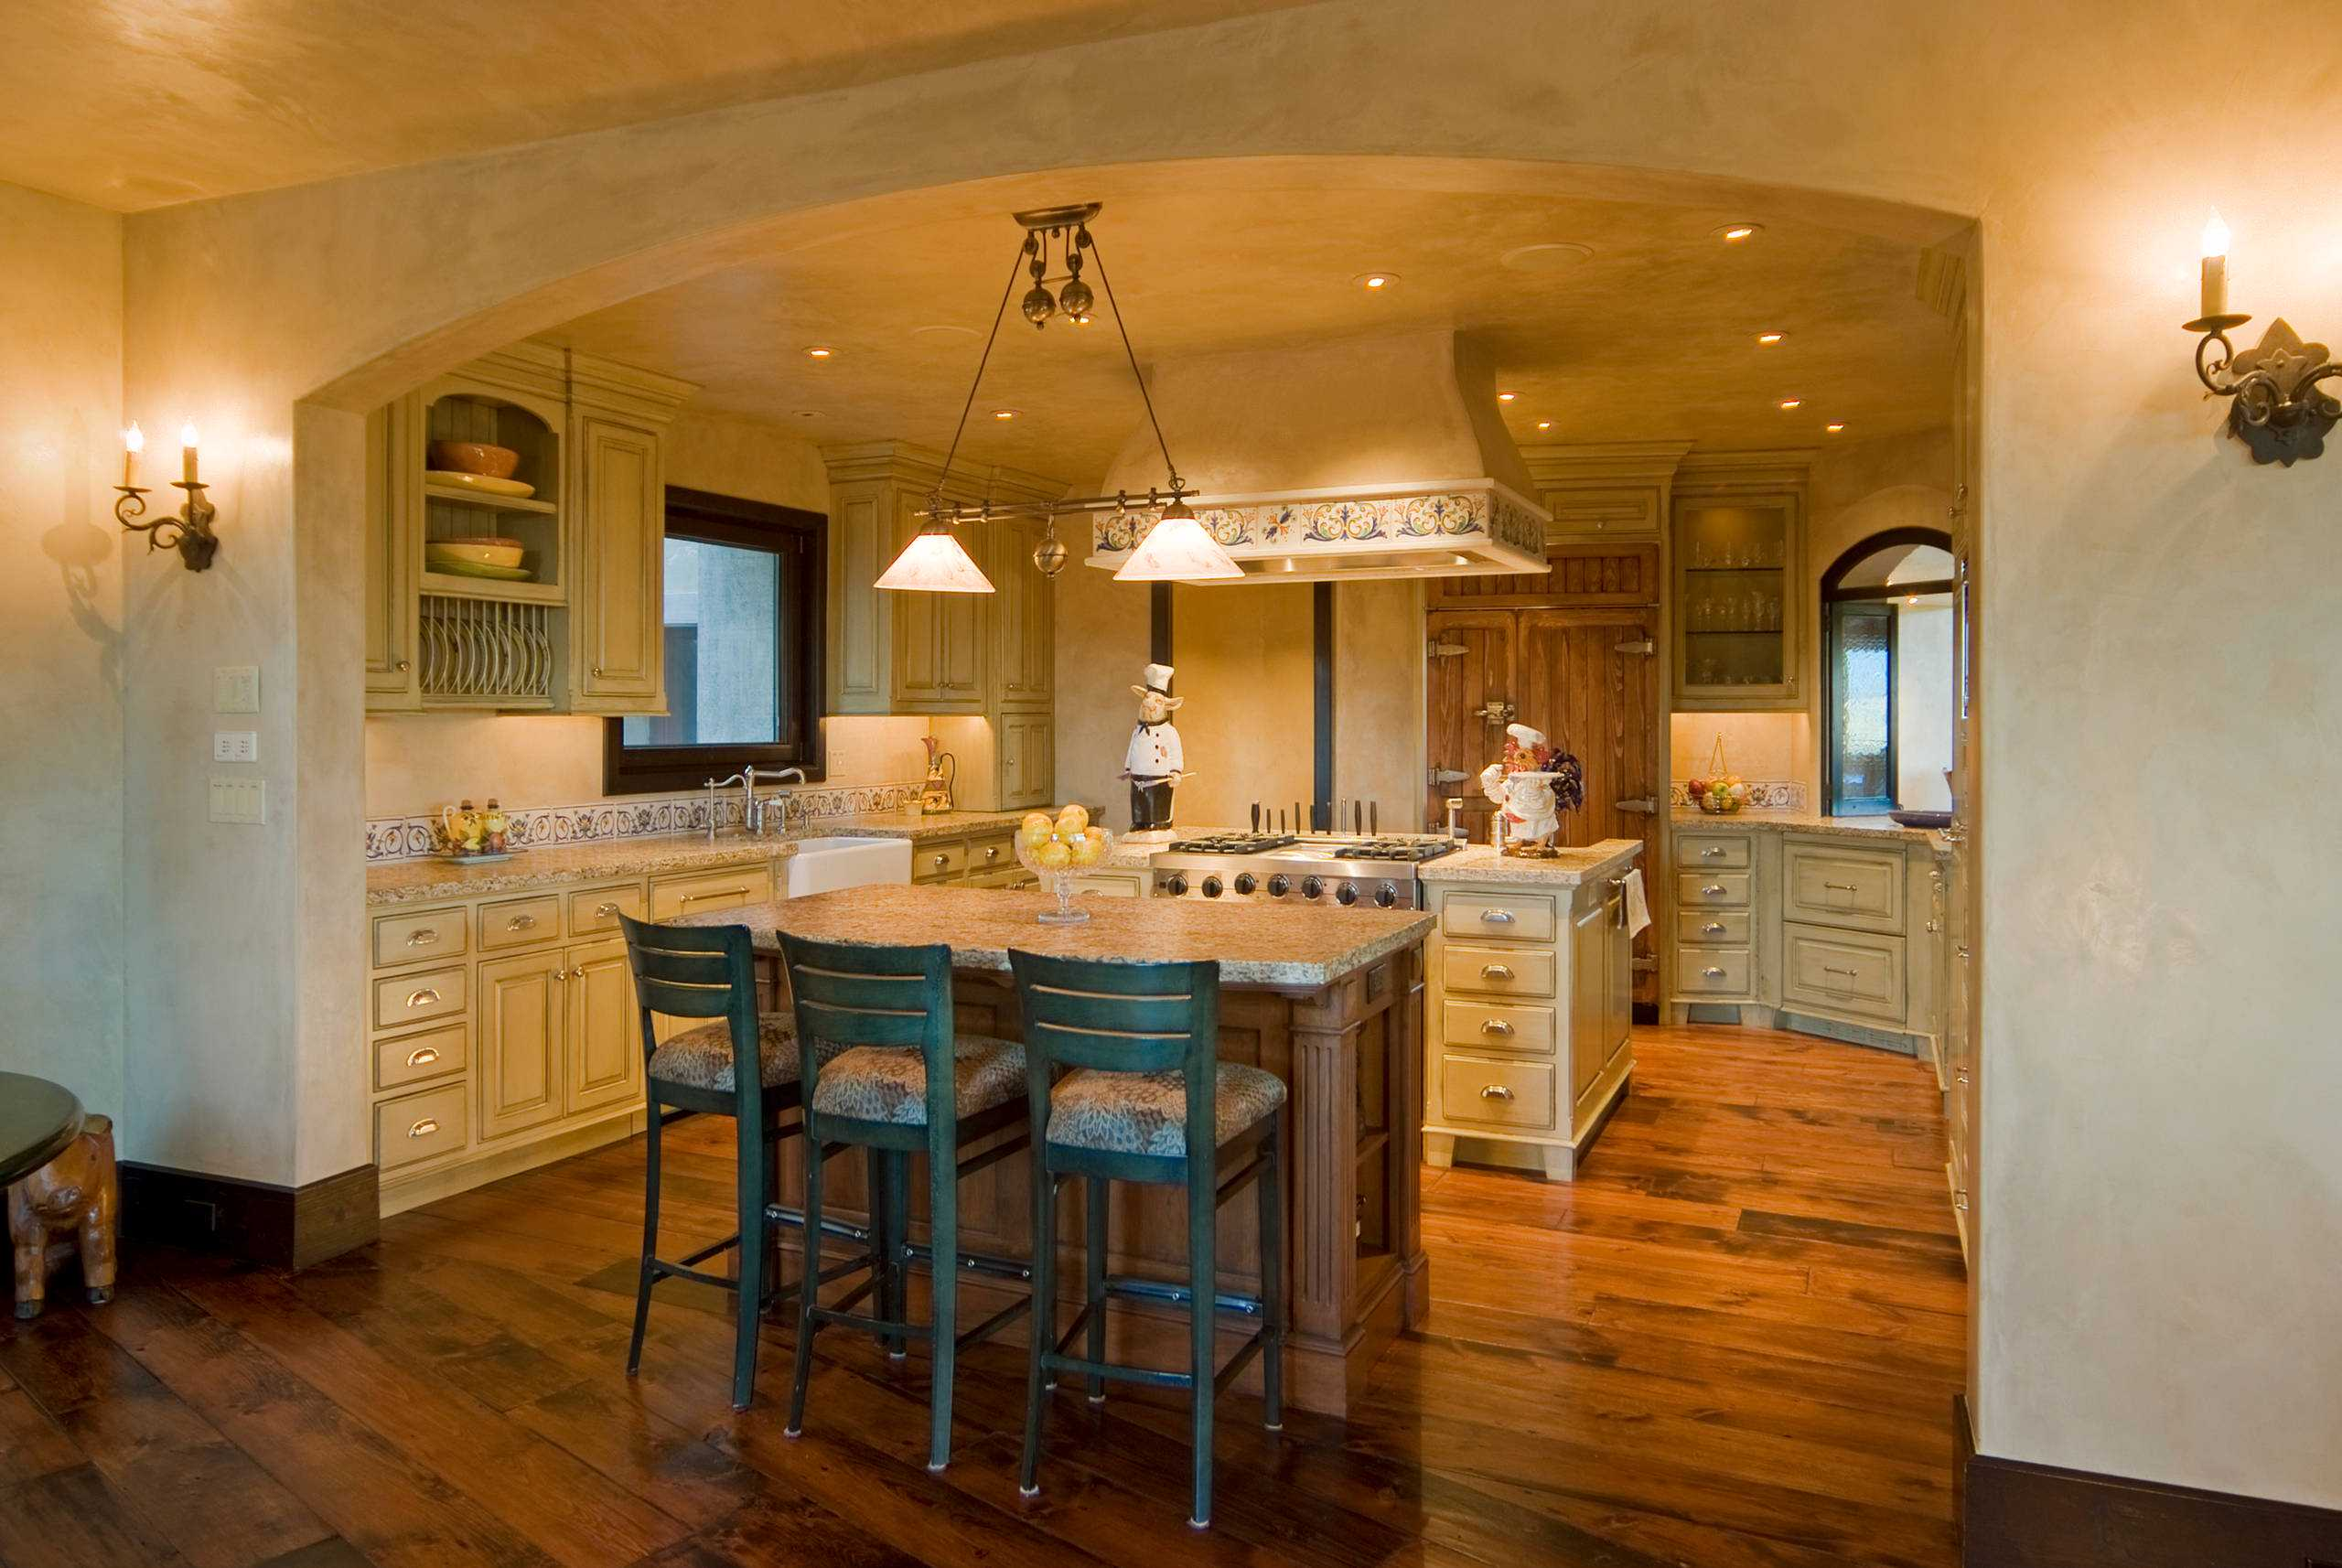 Kitchen Design Ideas: 16 Charming Mediterranean Kitchen Designs That Will